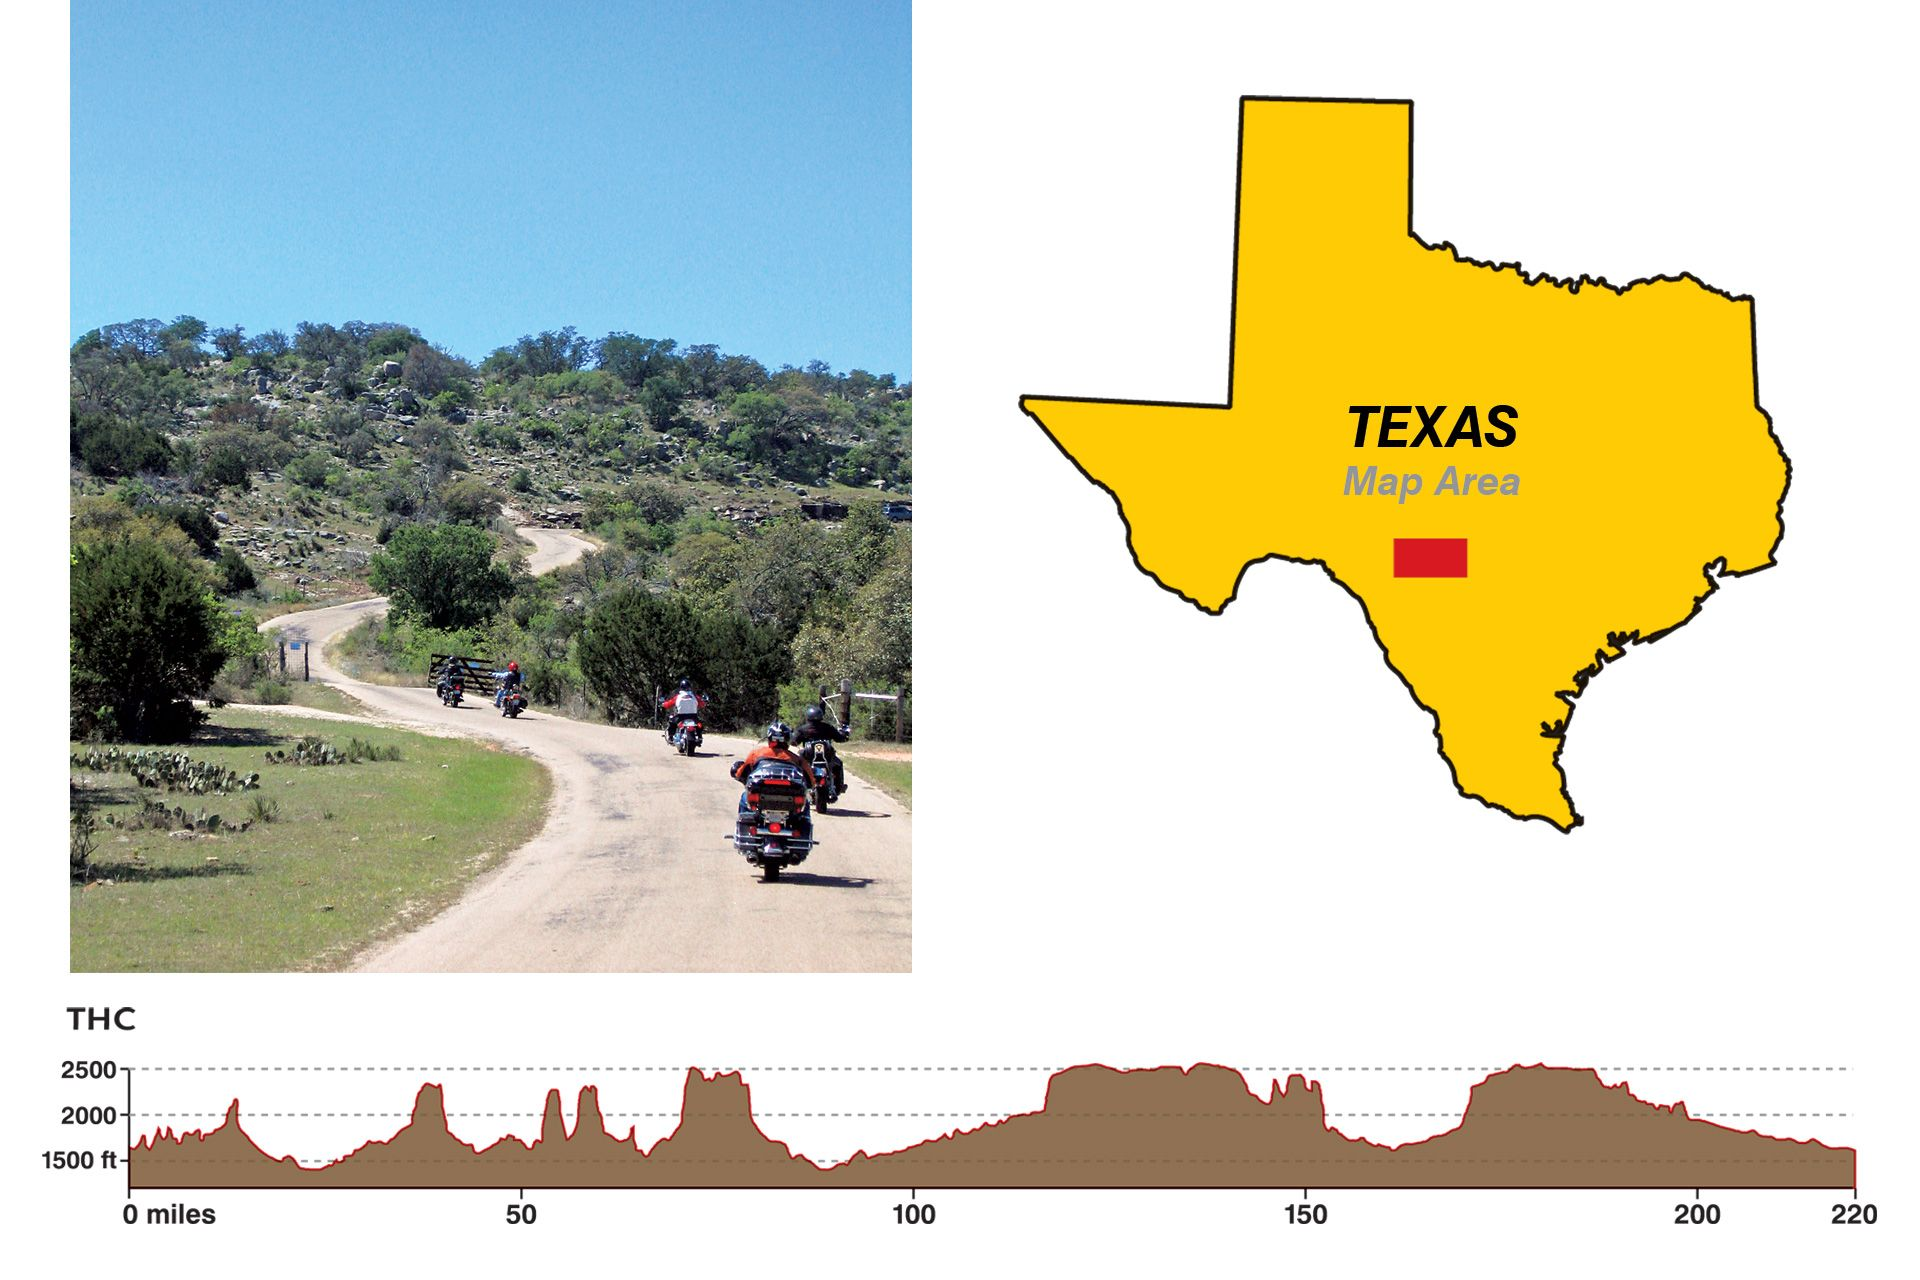 Texas Motorcycle Road Trips Texas Hill Country Must Ride